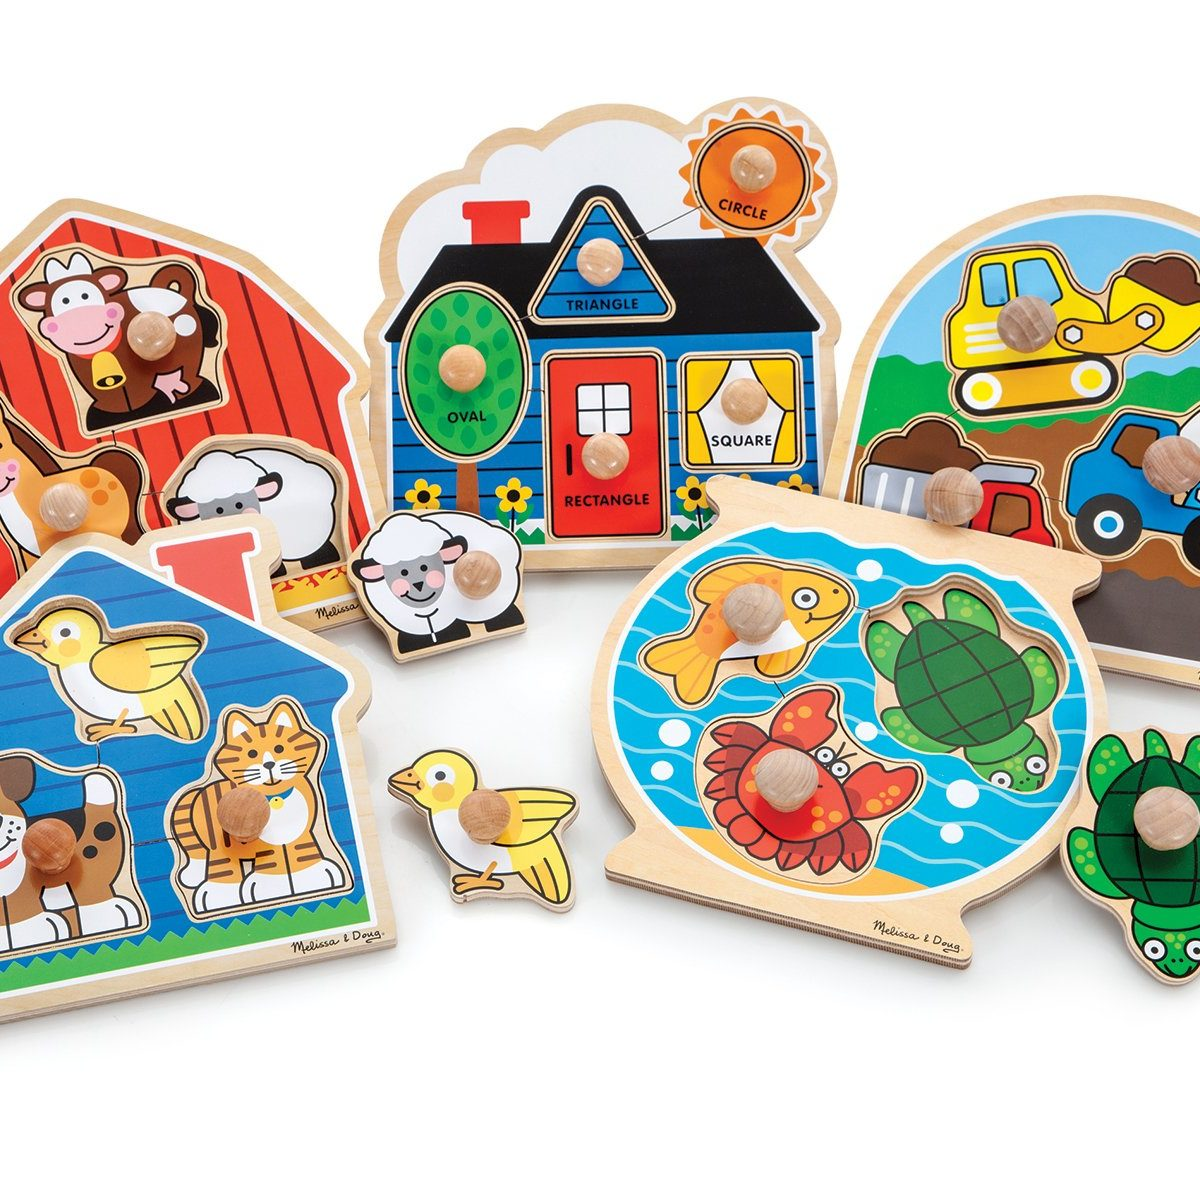 Farmhouse, House, Pet, Fish Bowl and Construction Knob Puzzles